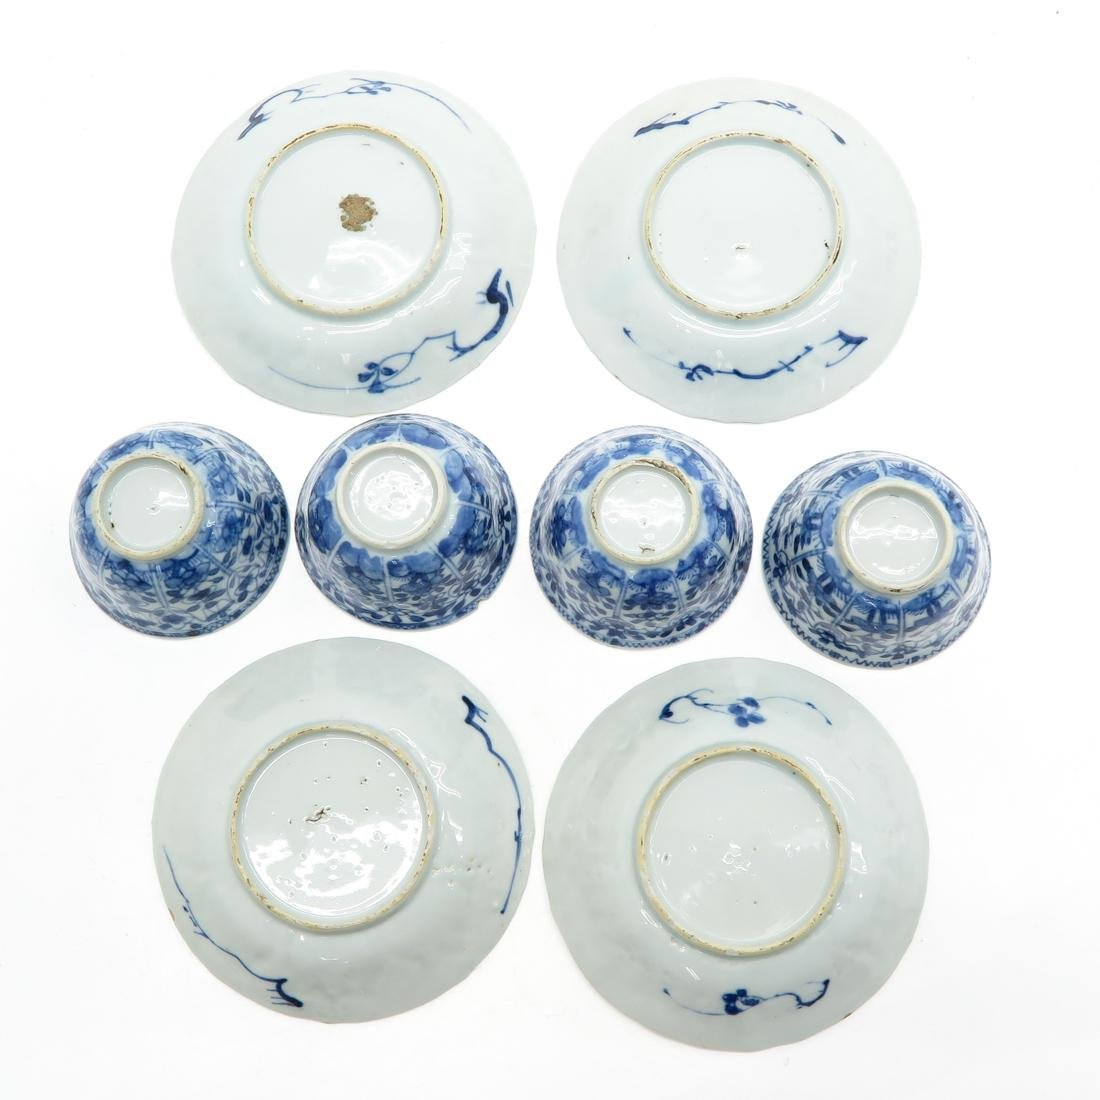 Lot of 4 Cups and Saucers - 6